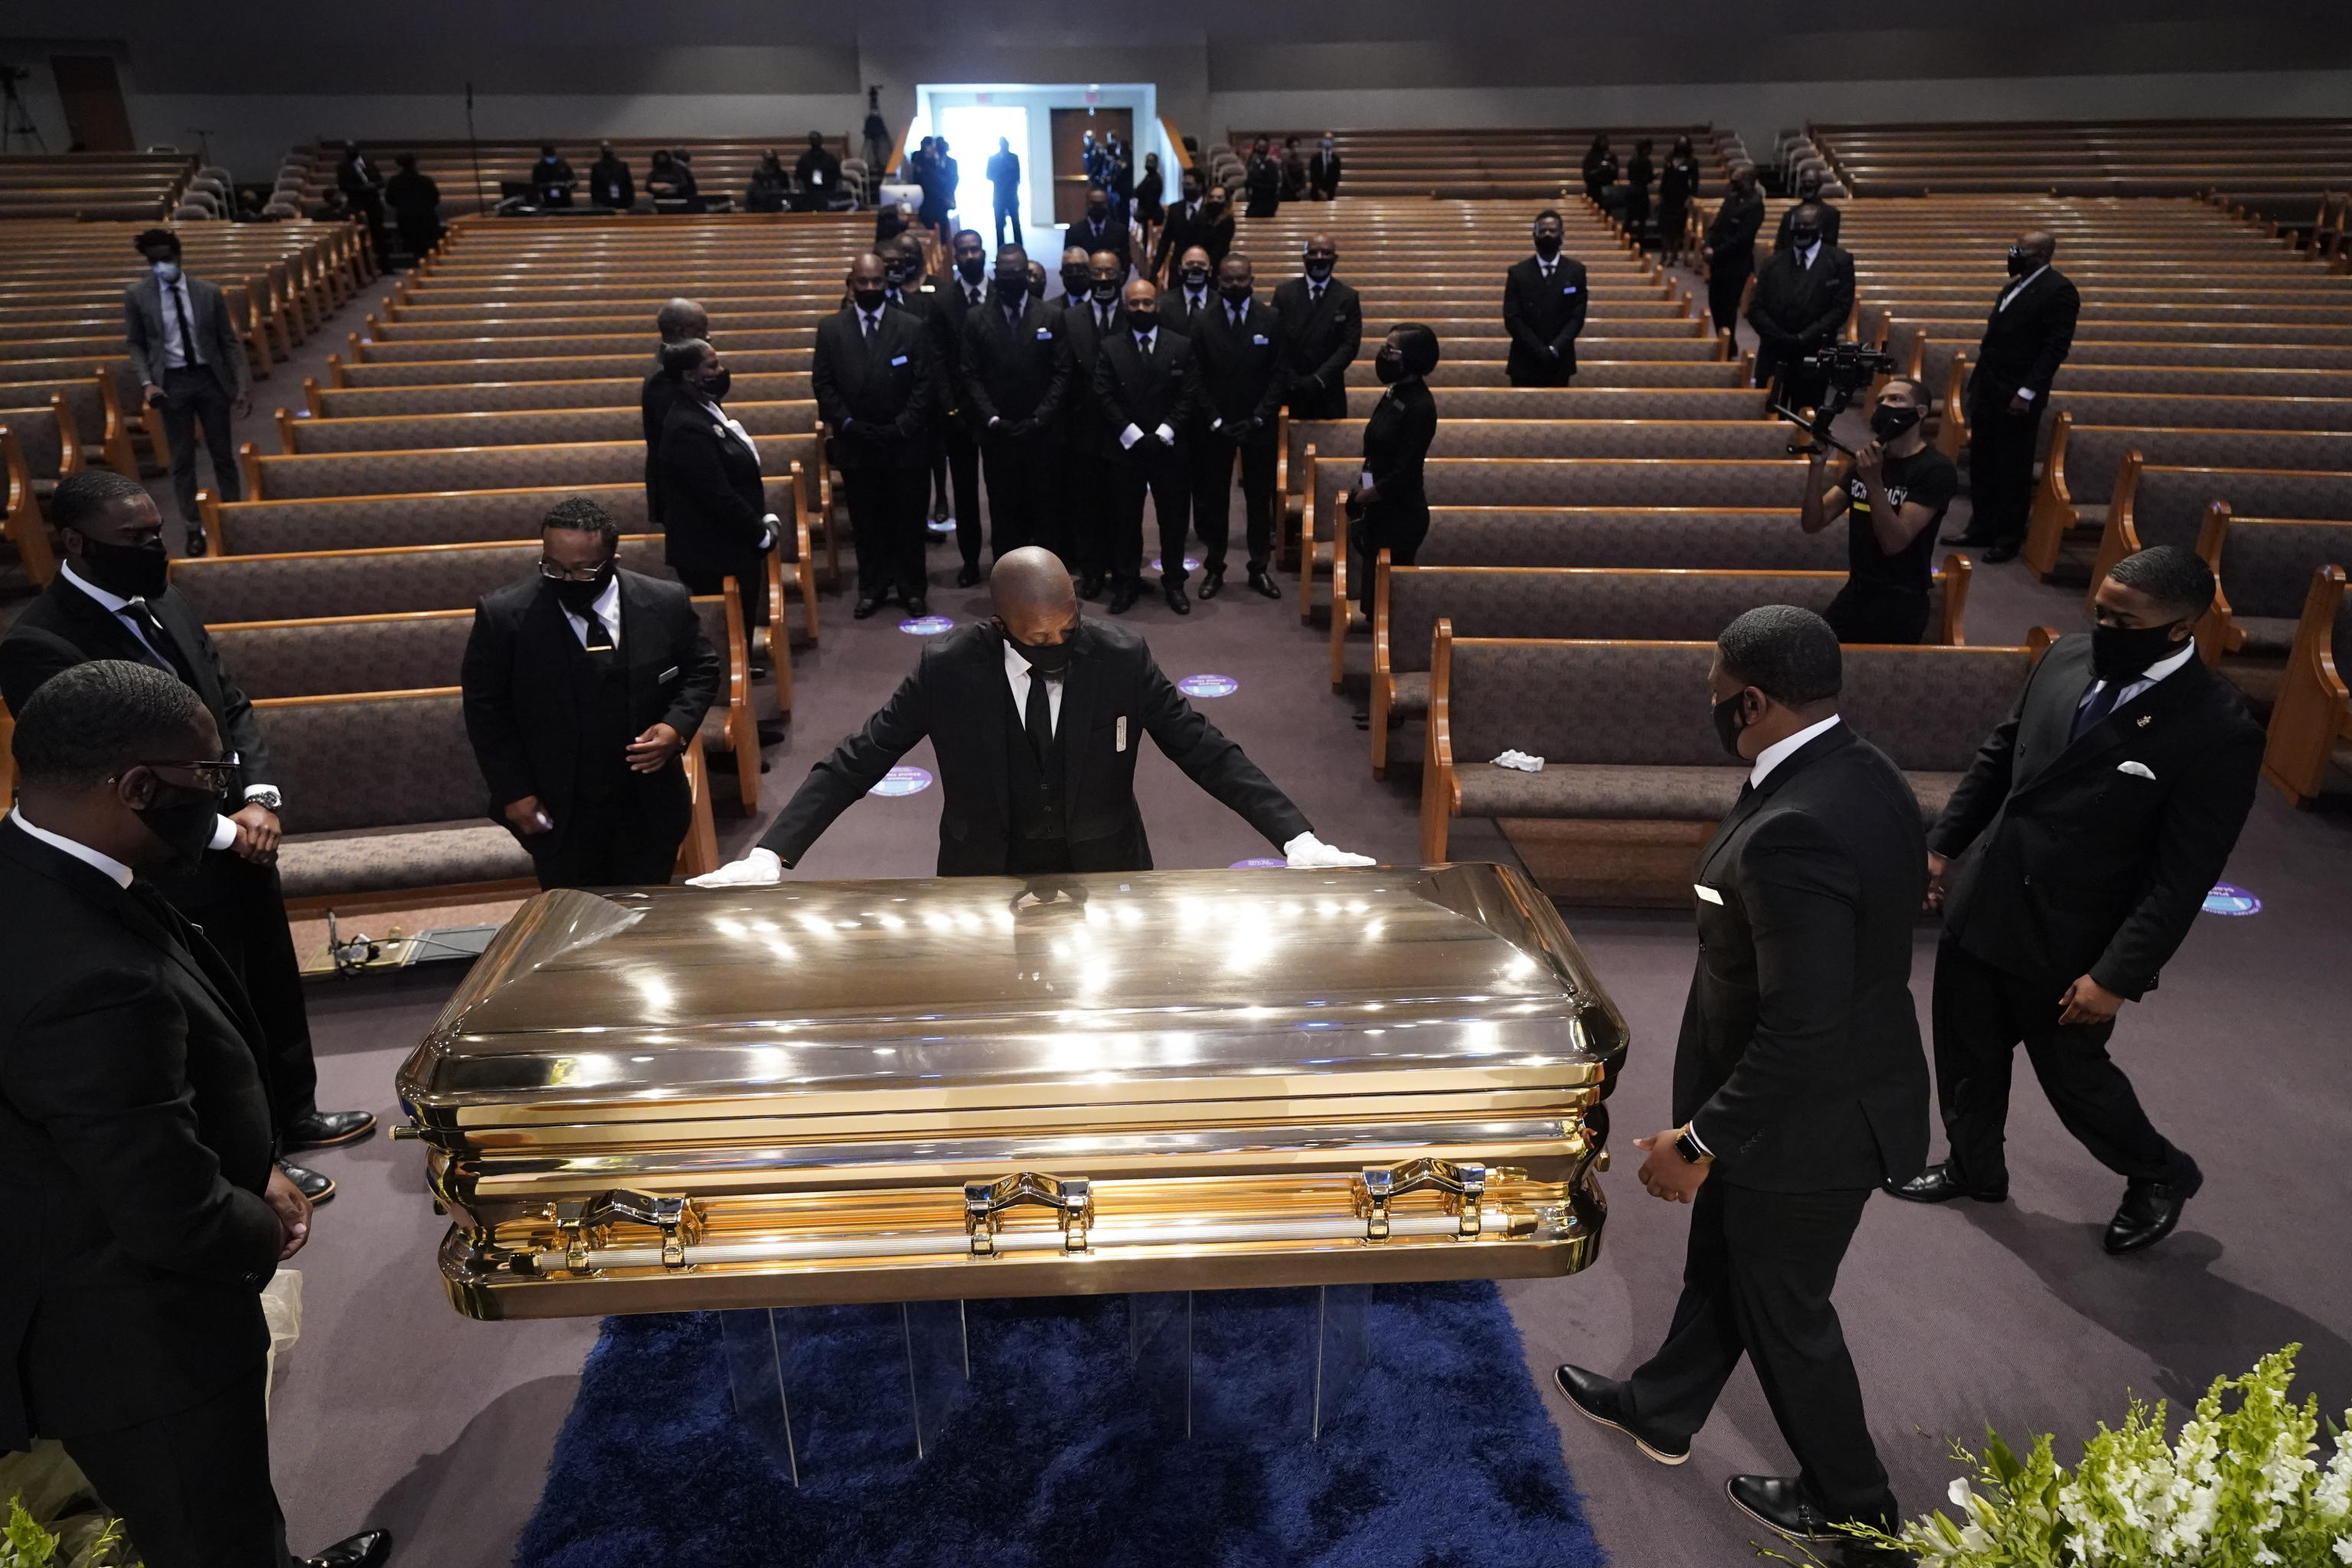 epa08474920 The casket of George Floyd is placed in the chapel during a funeral service for Floyd at the Fountain of Praise church, Houston, Texas, USA, 09 June 2020. A bystander's video posted online on 25 May, appeared to show George Floyd, 46, pleading with arresting officers that he couldn't breathe as an officer knelt on his neck. The unarmed Black man later died in police custody and all four officers involved in the arrest have been charged and arrested.  EPA/David J. Phillip / POOL